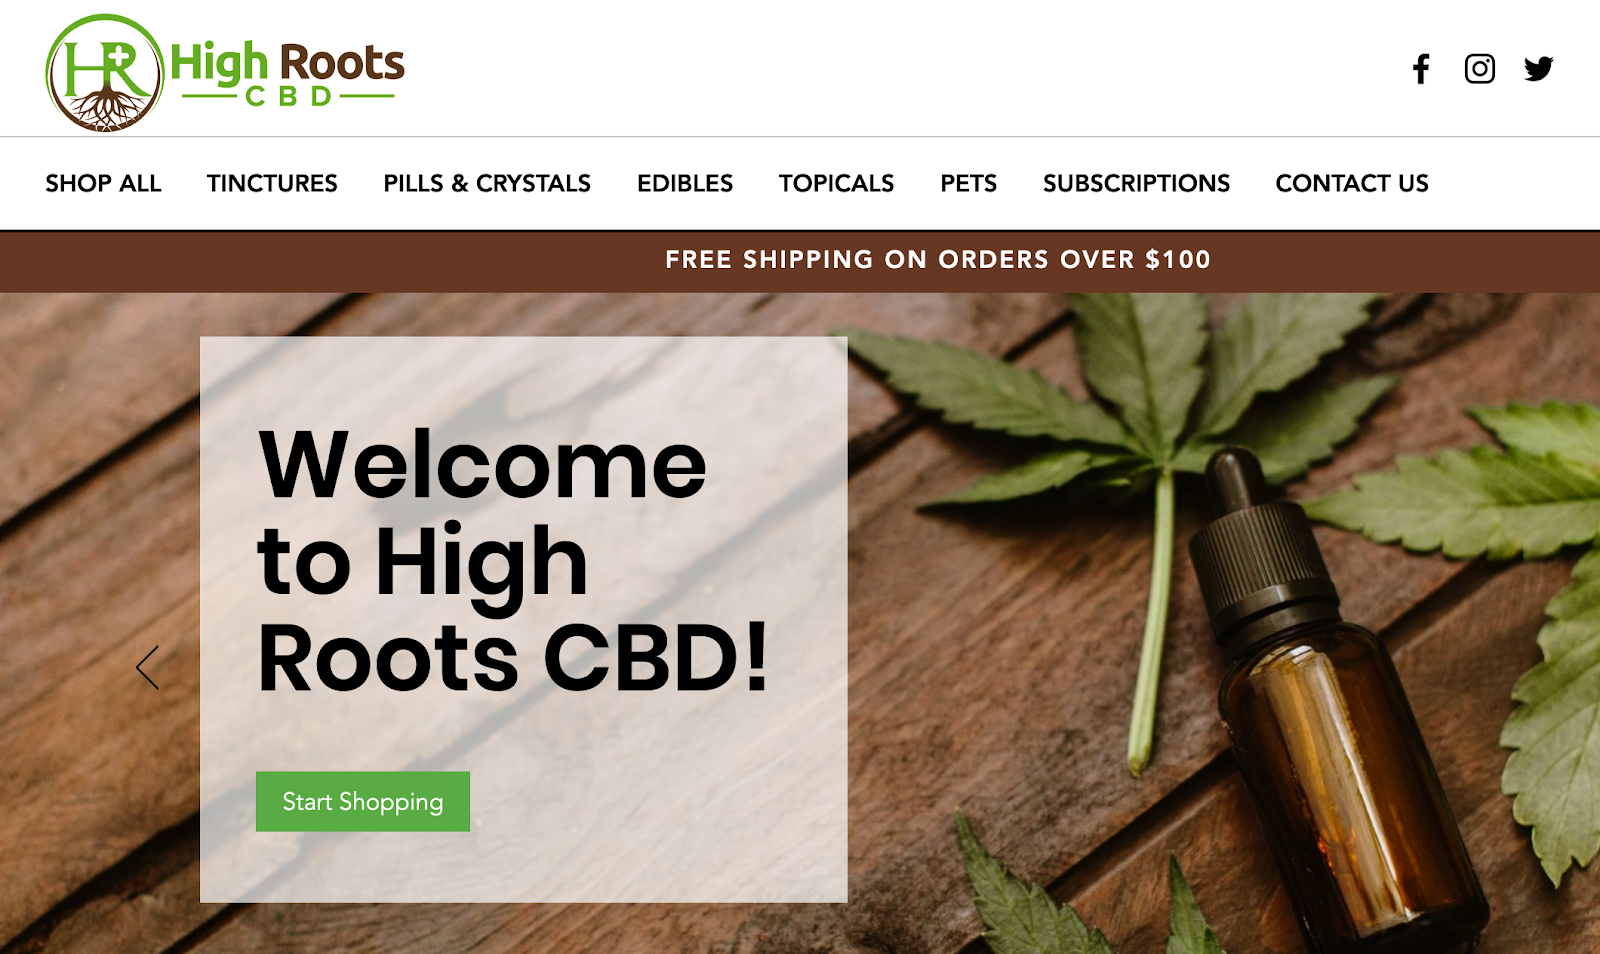 High Roots CBD | Brands Looking for Influencers